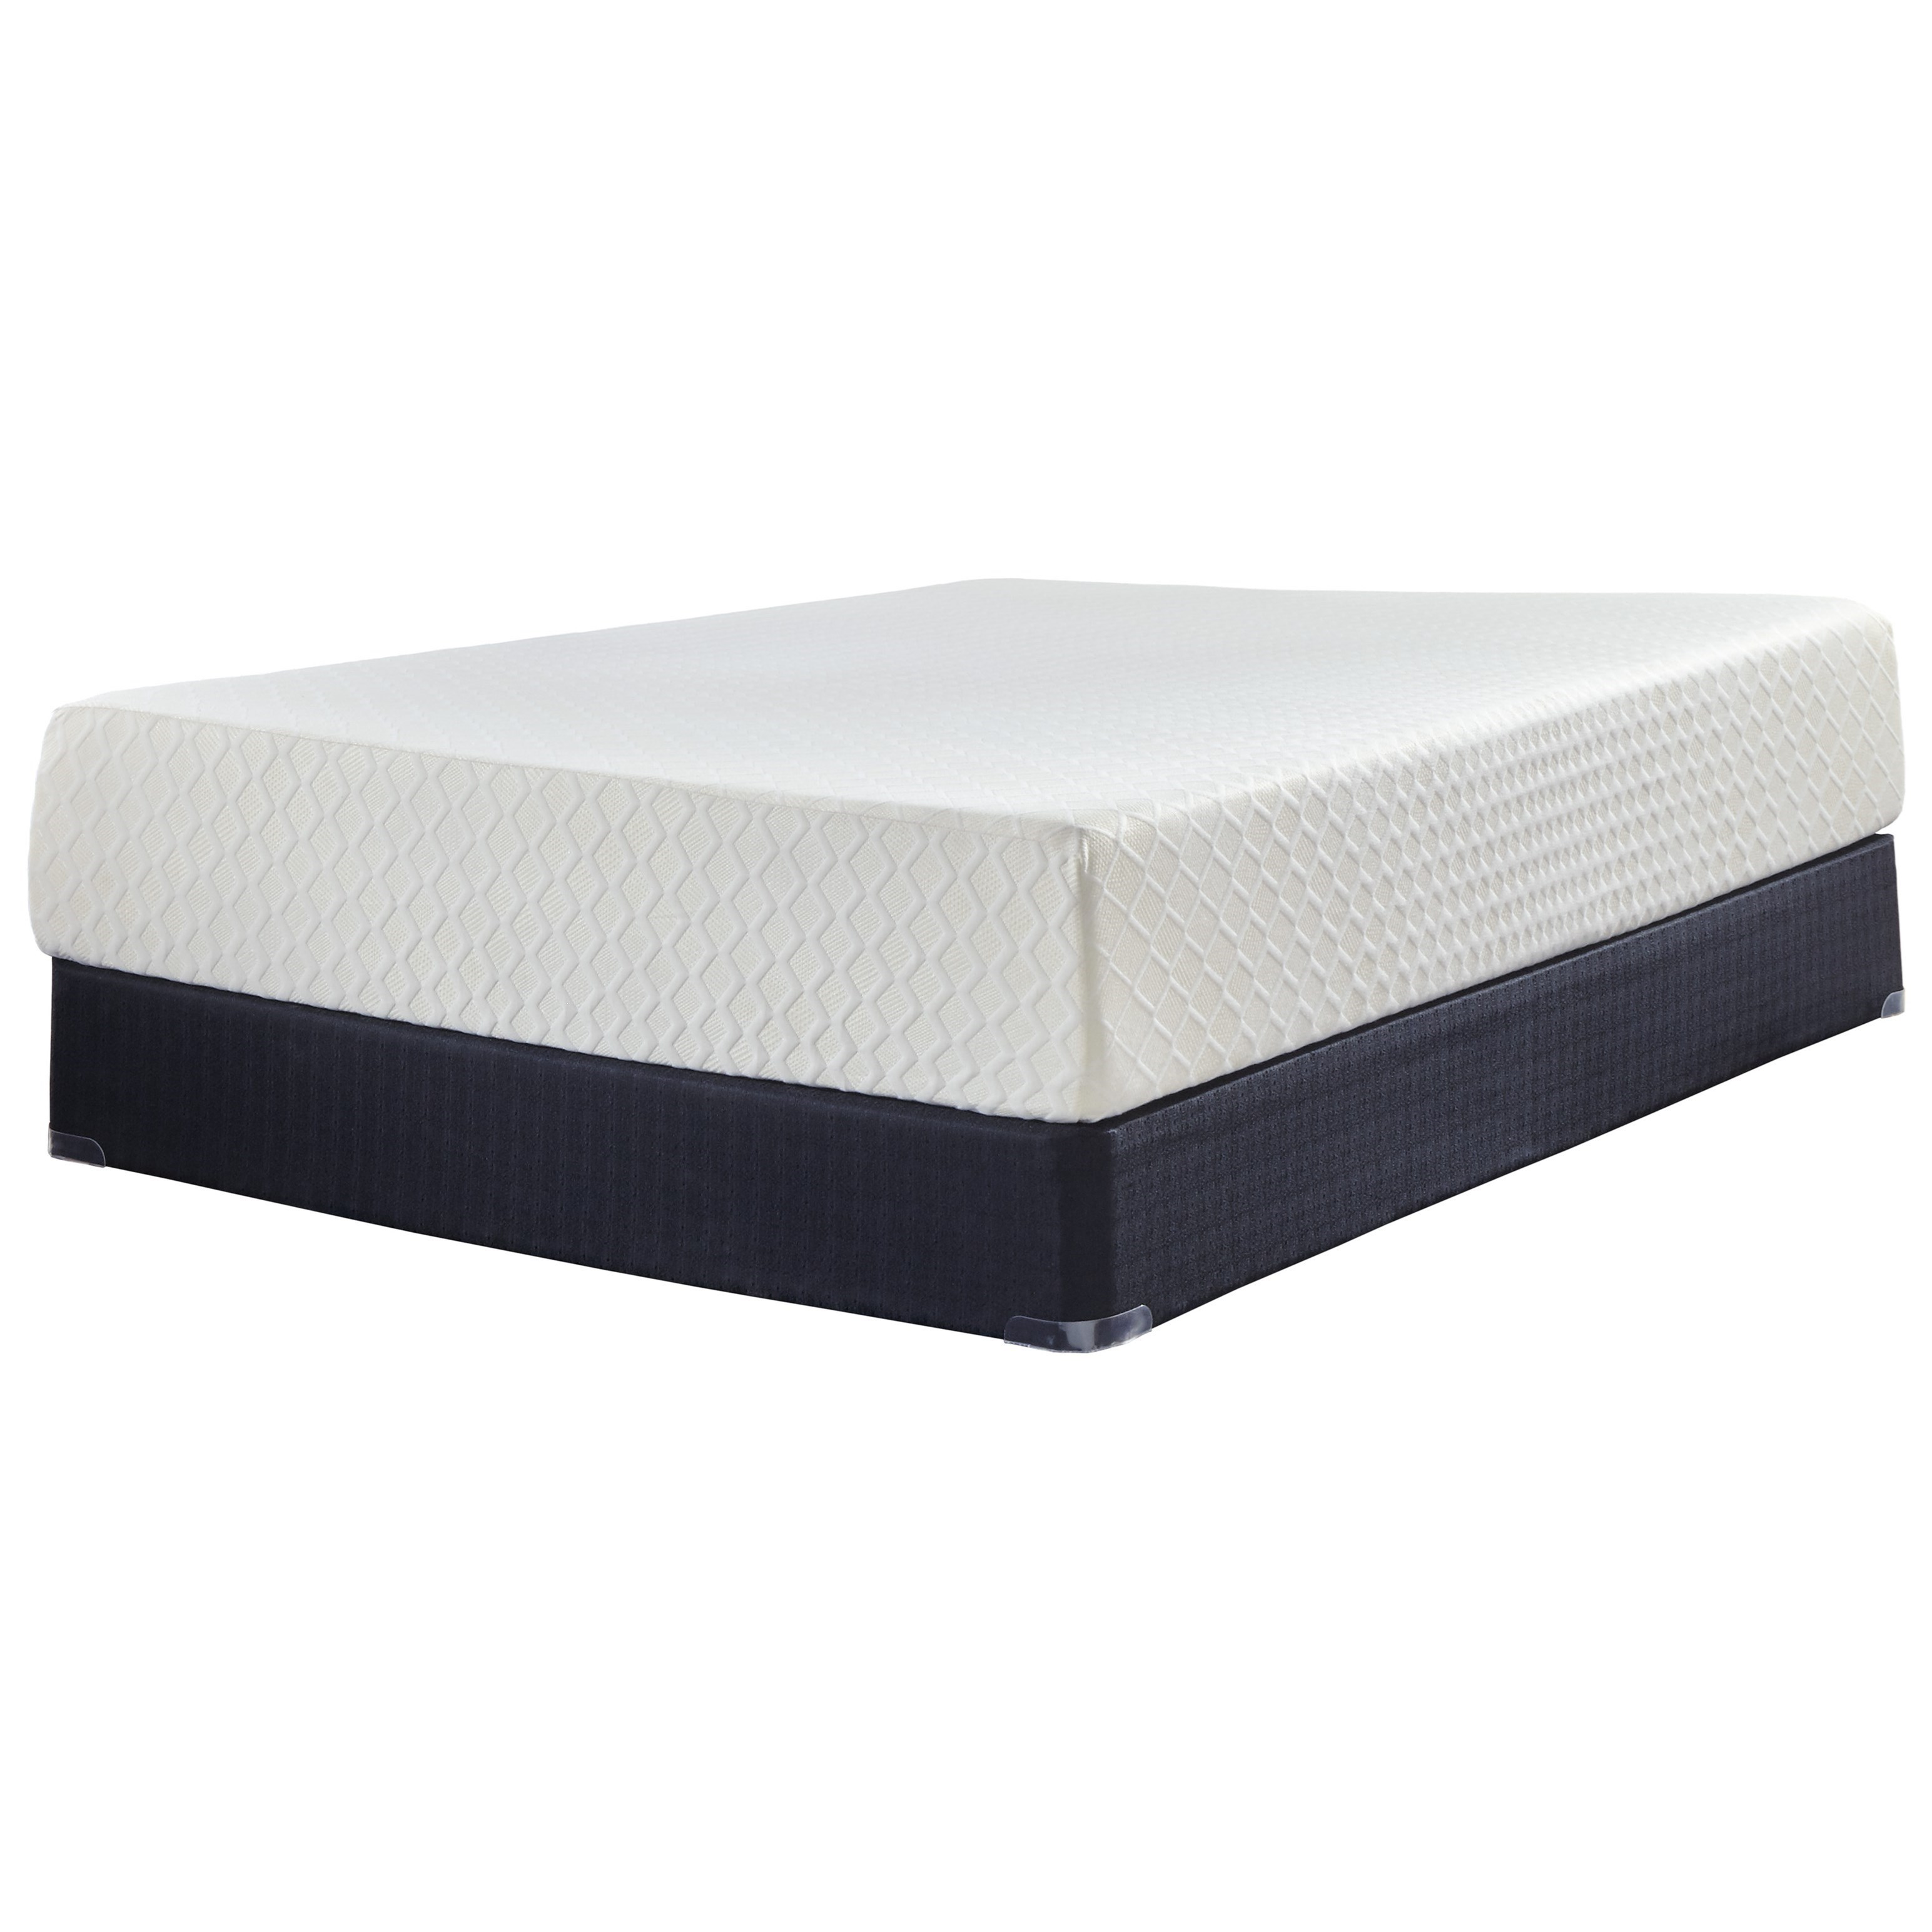 "Sierra Sleep M727 Chime 12 Queen 12"" Memory Foam Mattress Set - Item Number: M72731+M80X32"